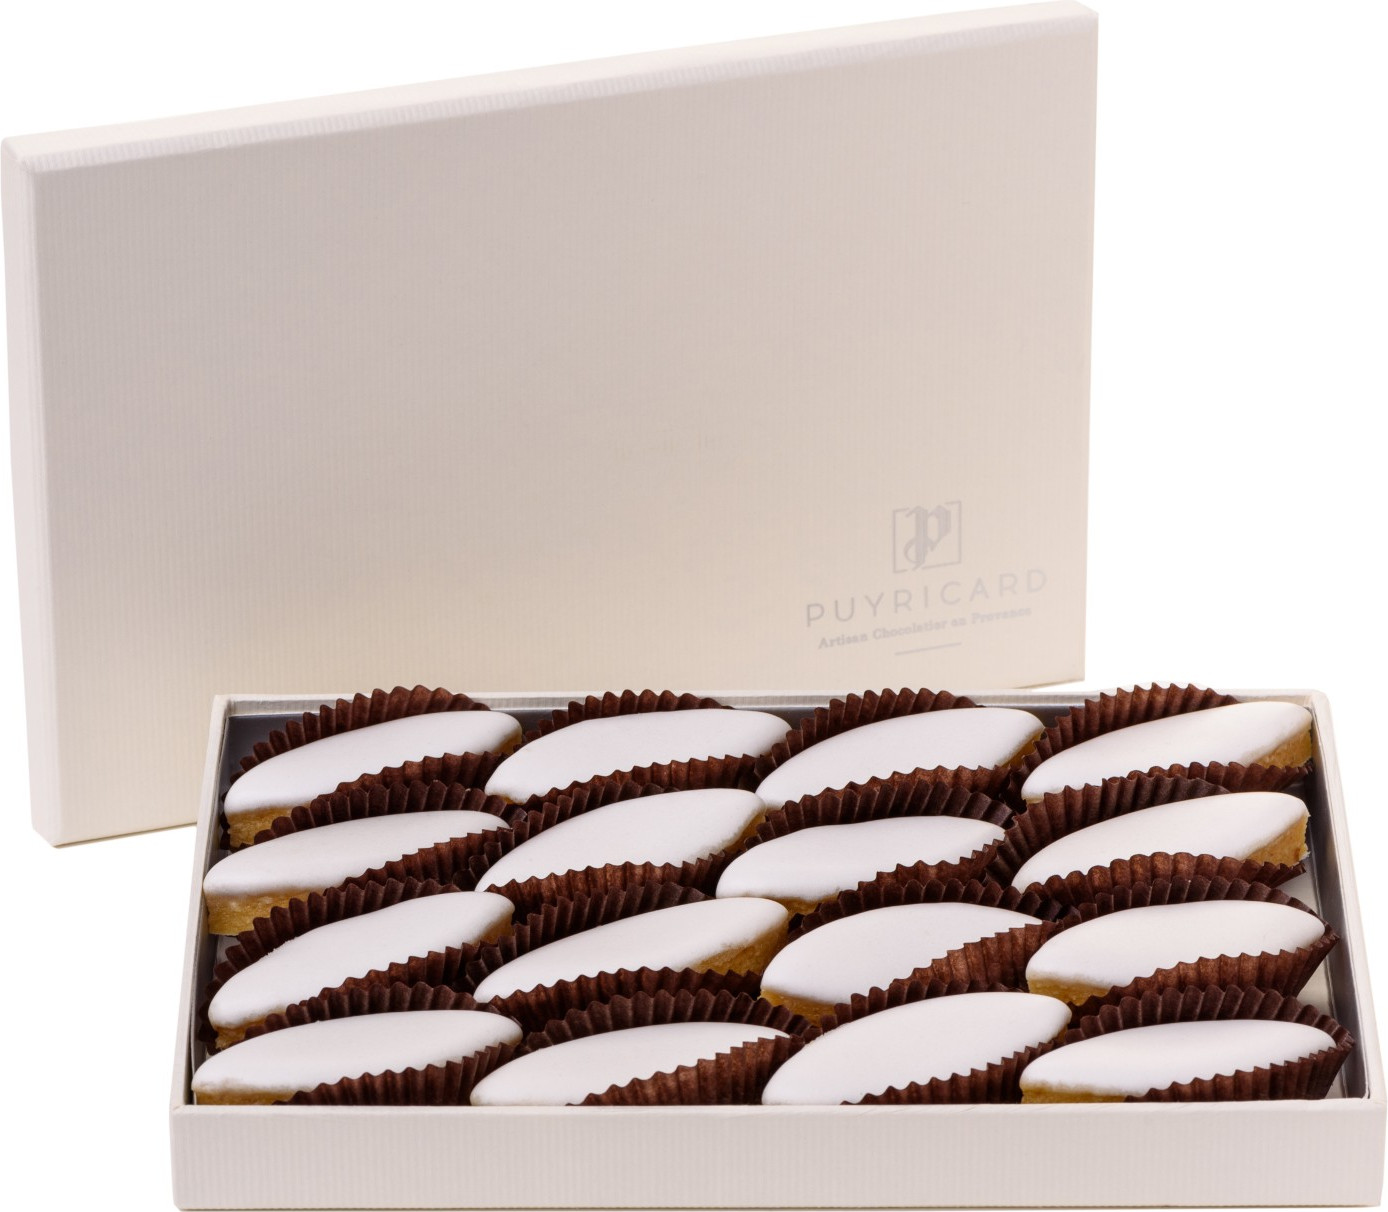 BALLOTIN BOX OF CANDIED CHESTNUTS 750g